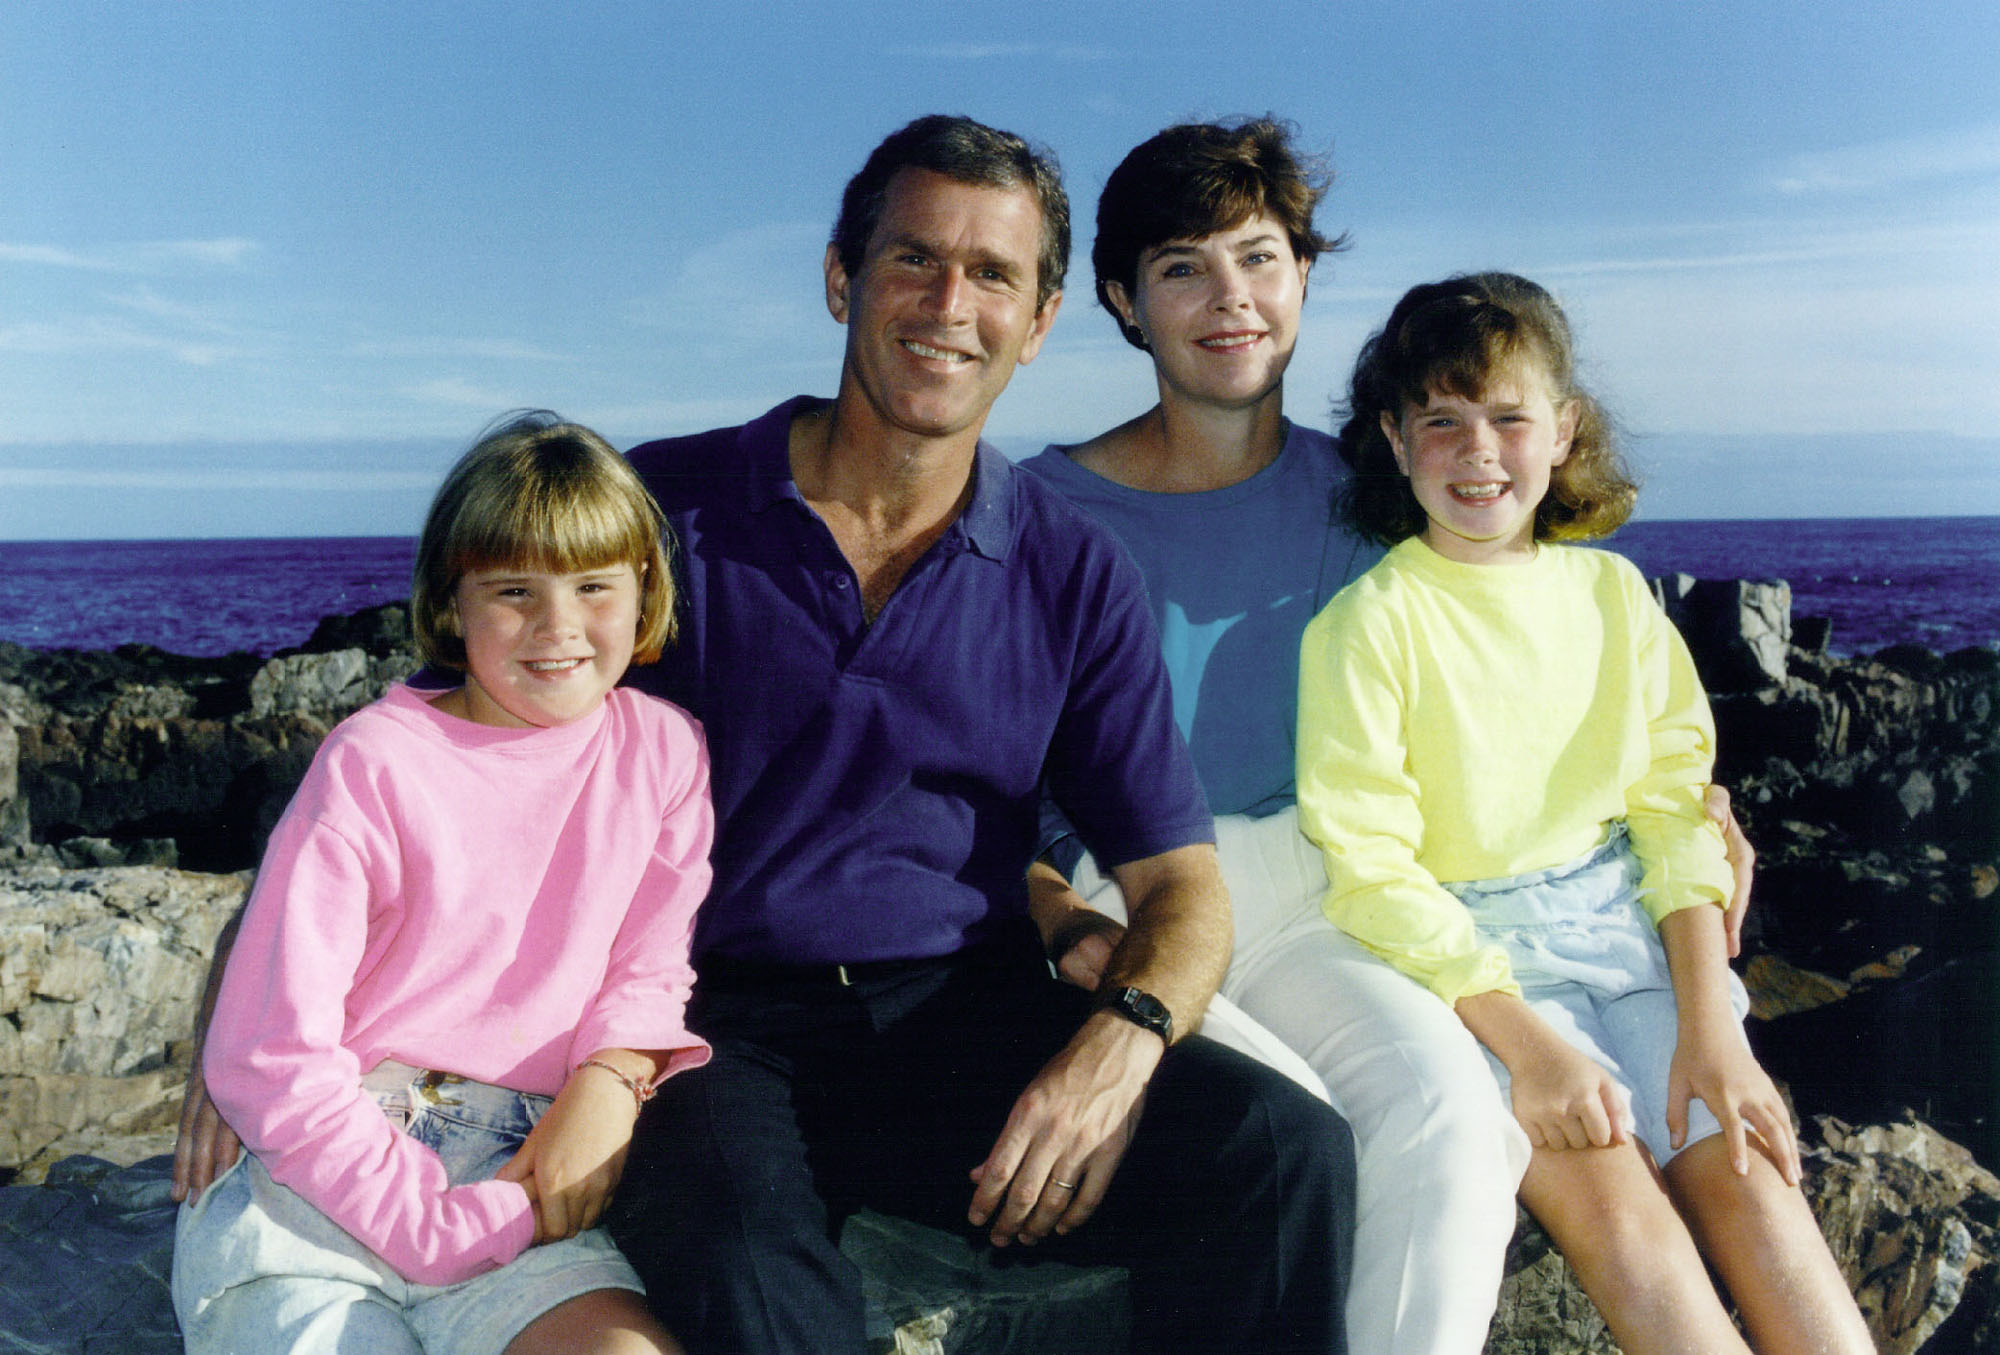 George, Laura, Jenna, and Barbara Bush 1987